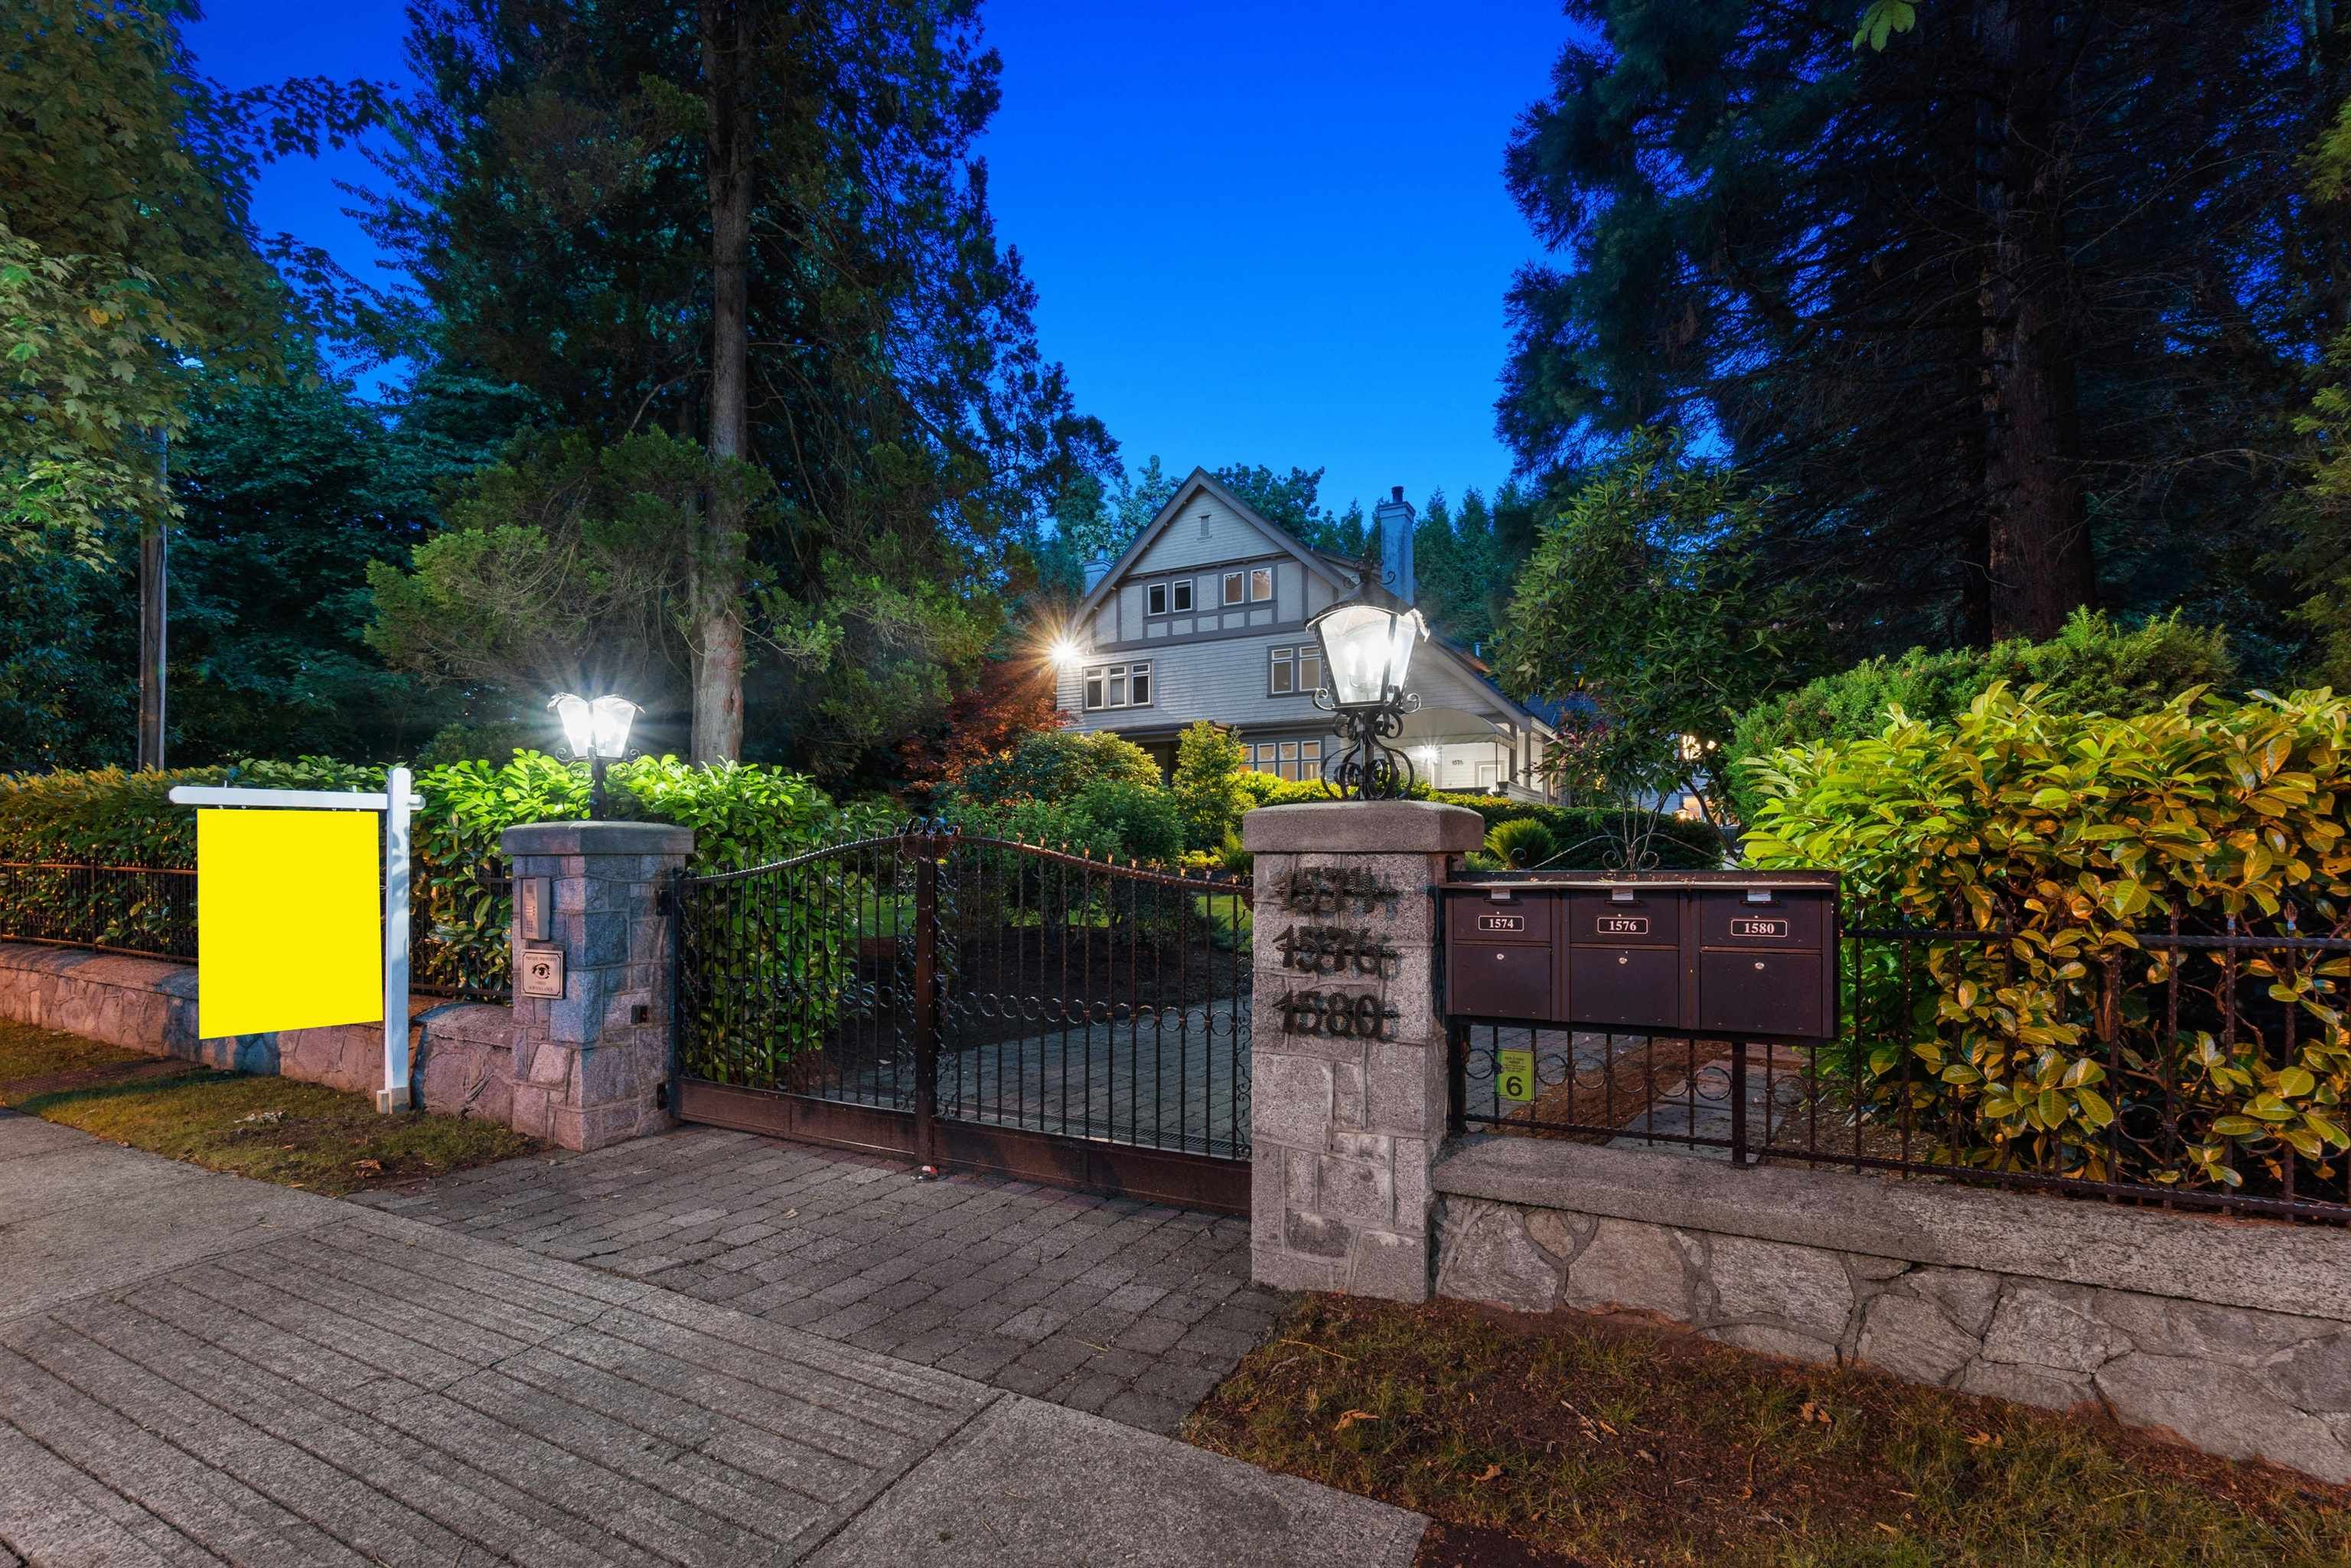 Main Photo: 1574 - 1580 ANGUS Drive in Vancouver: Shaughnessy Townhouse for sale (Vancouver West)  : MLS®# R2616703